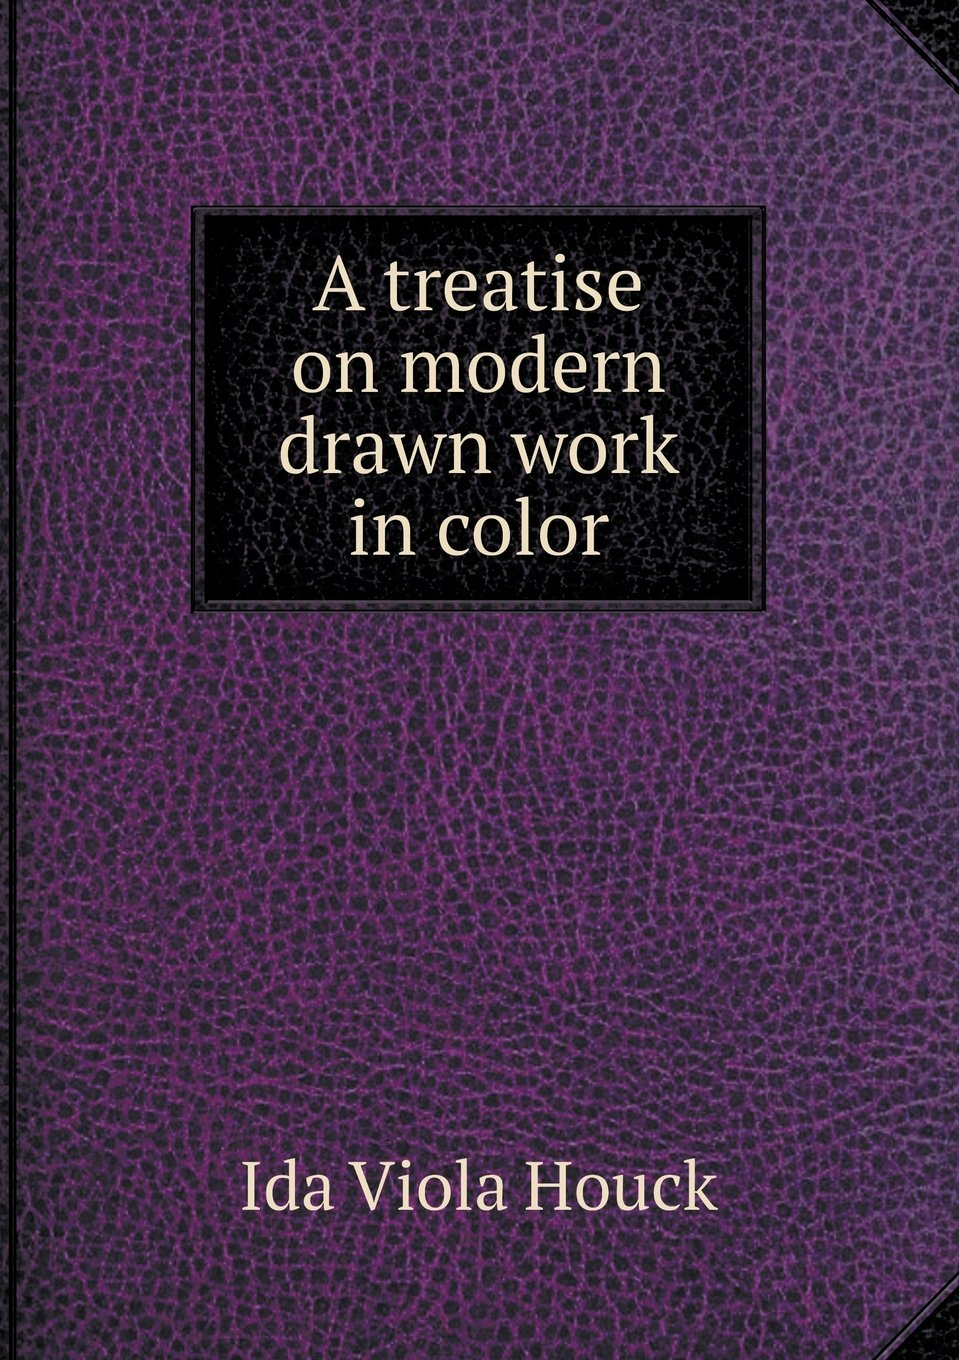 Download A treatise on modern drawn work in color ebook